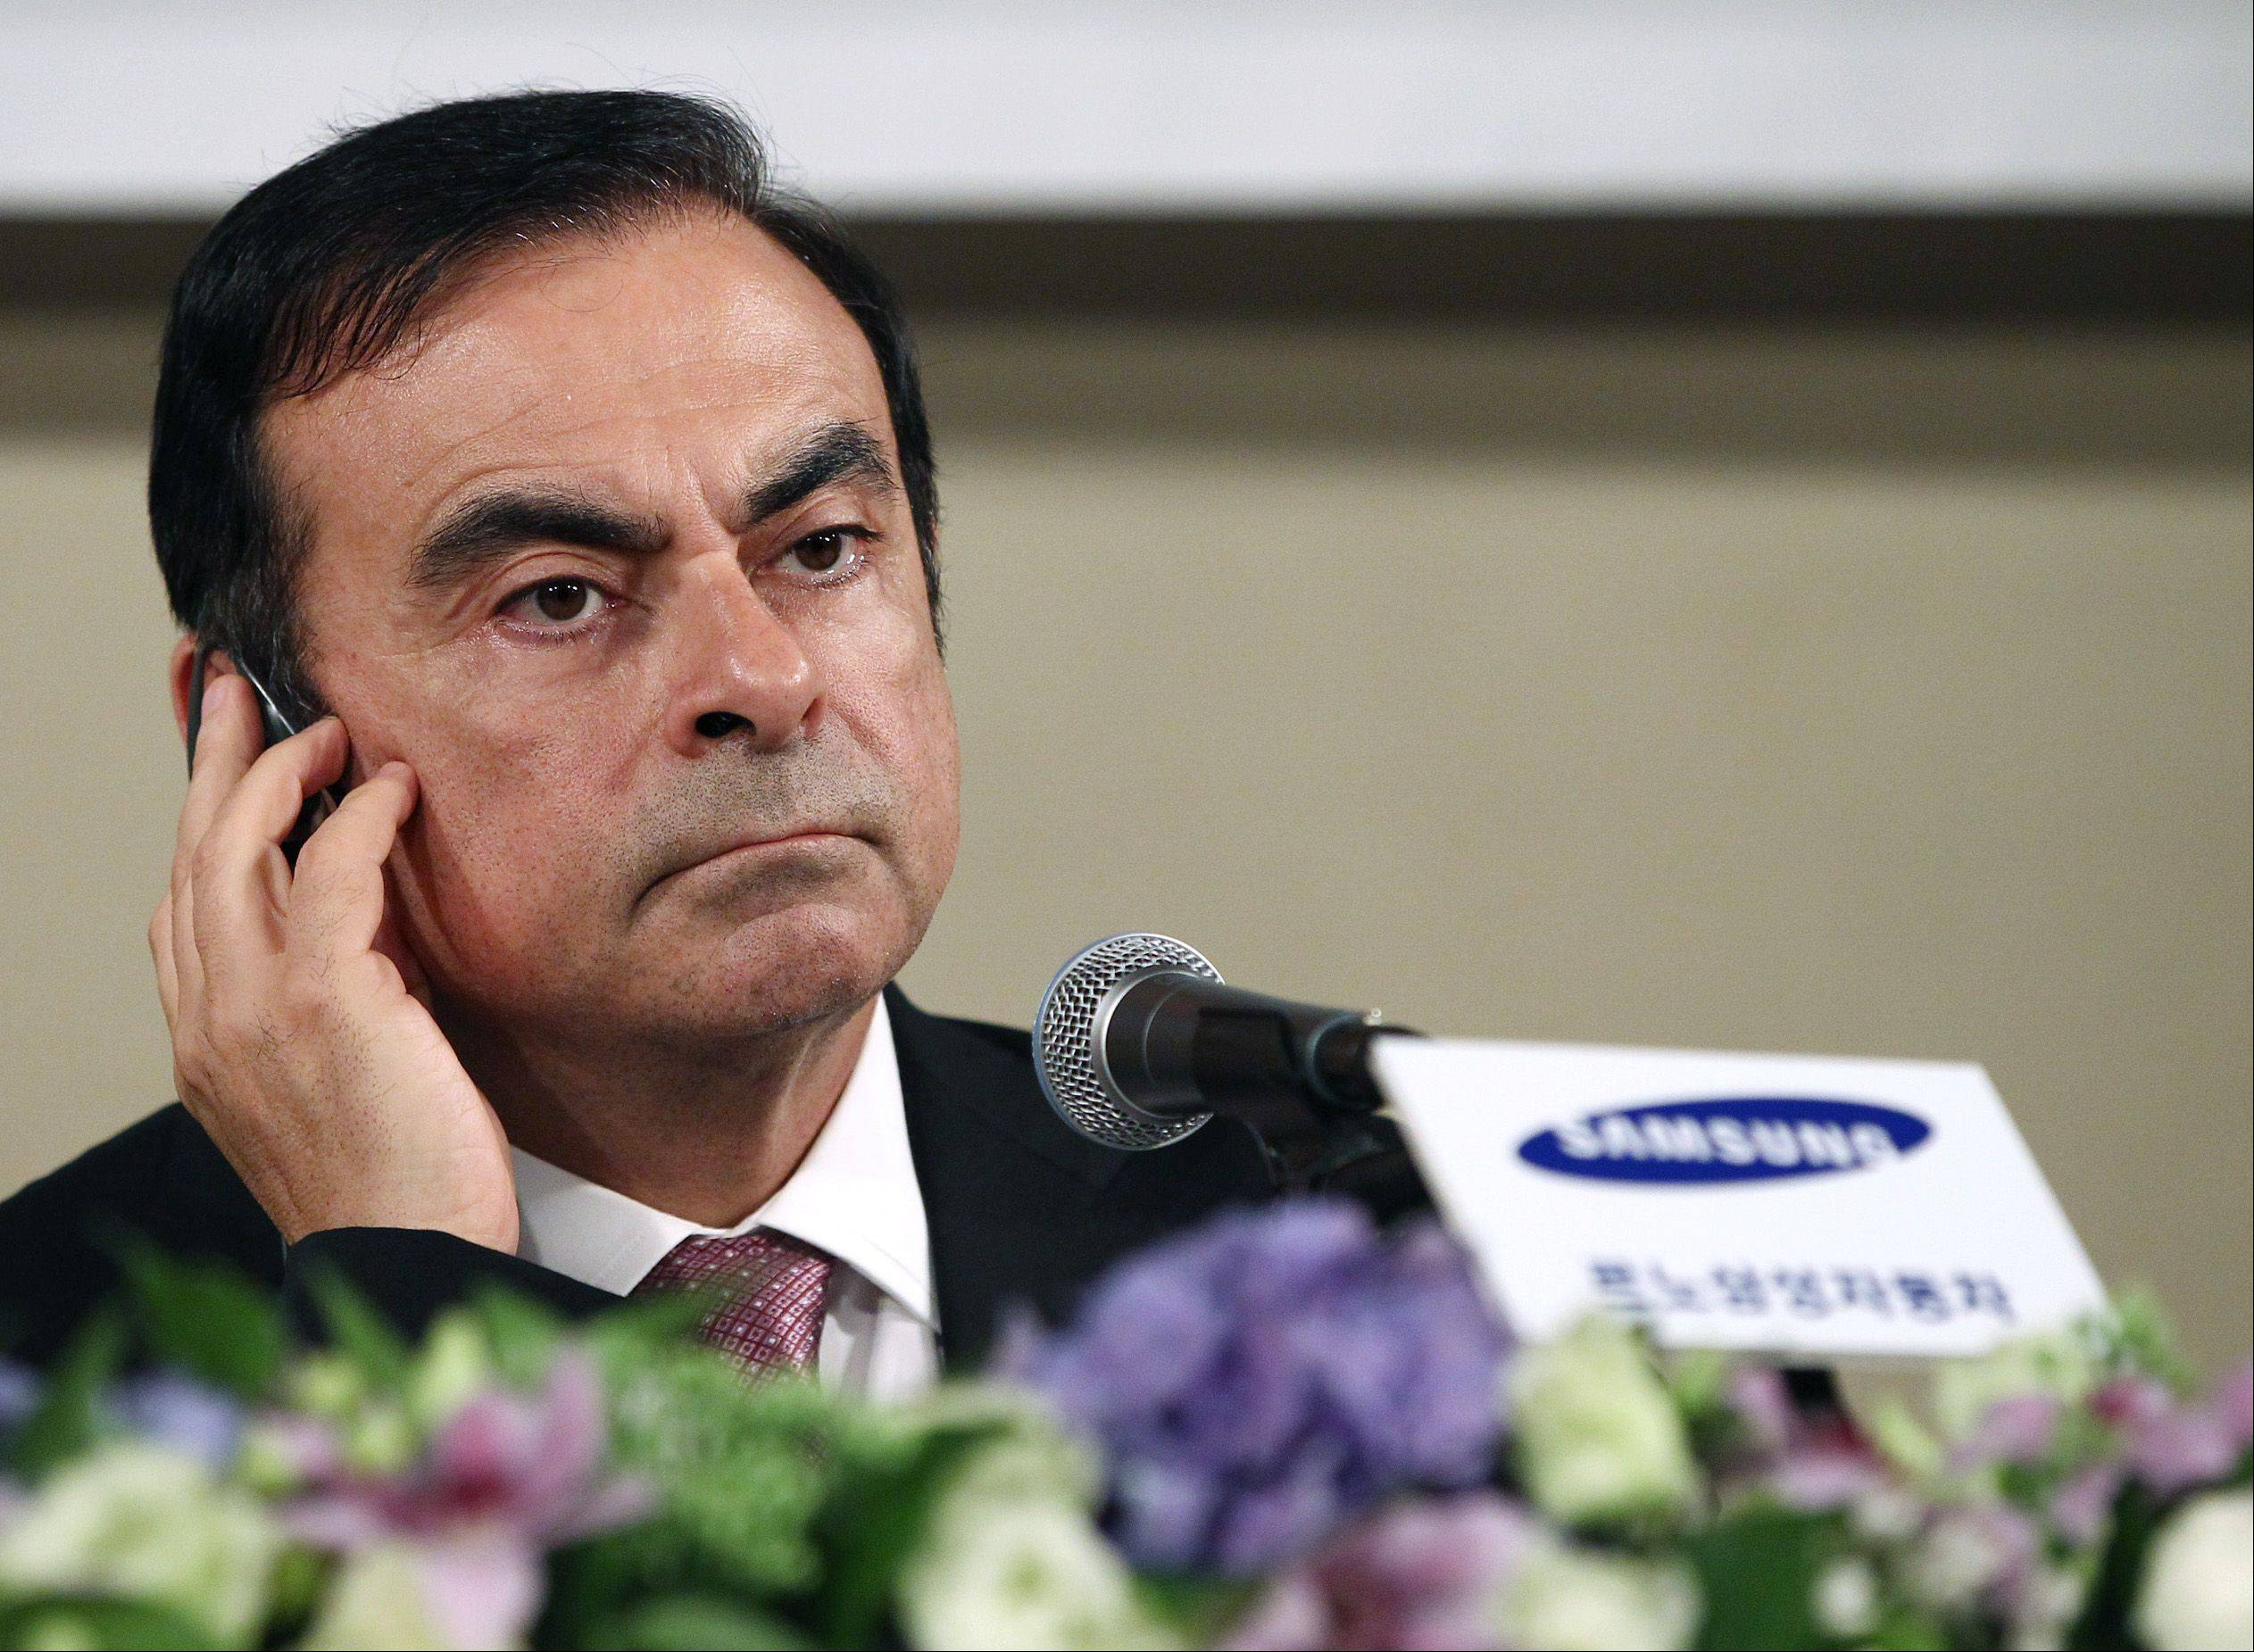 Nissan Motor Co. Chief Executive Officer Carlos Ghosn said he expects Europe�s auto industry to take many years to recover from shrinking demand and excess capacity.